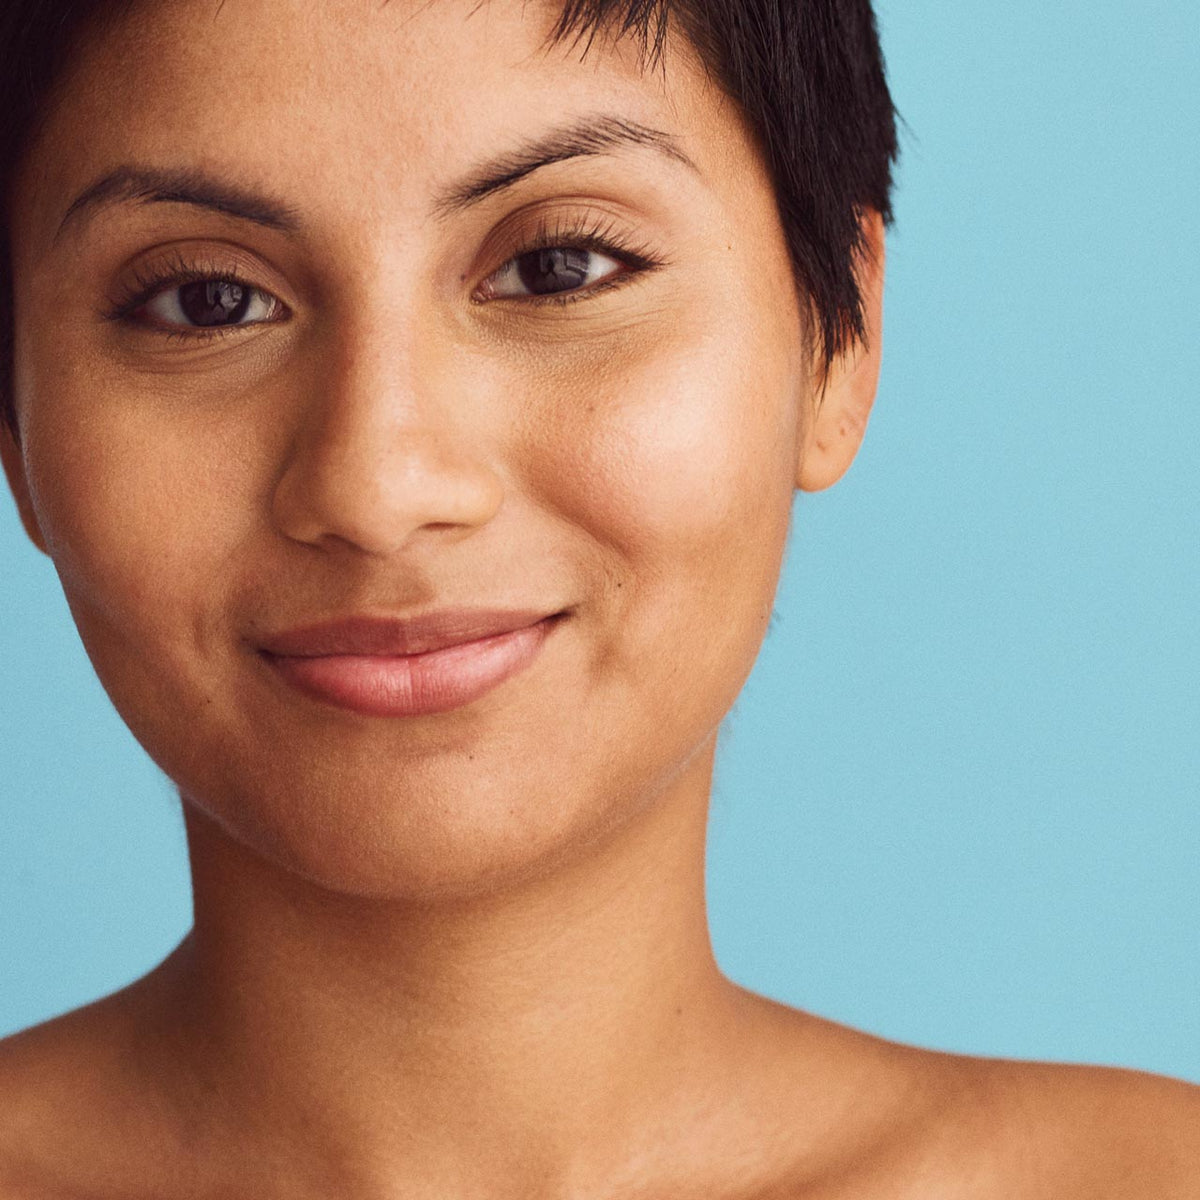 The Best Ways to Brighten Dull Skin